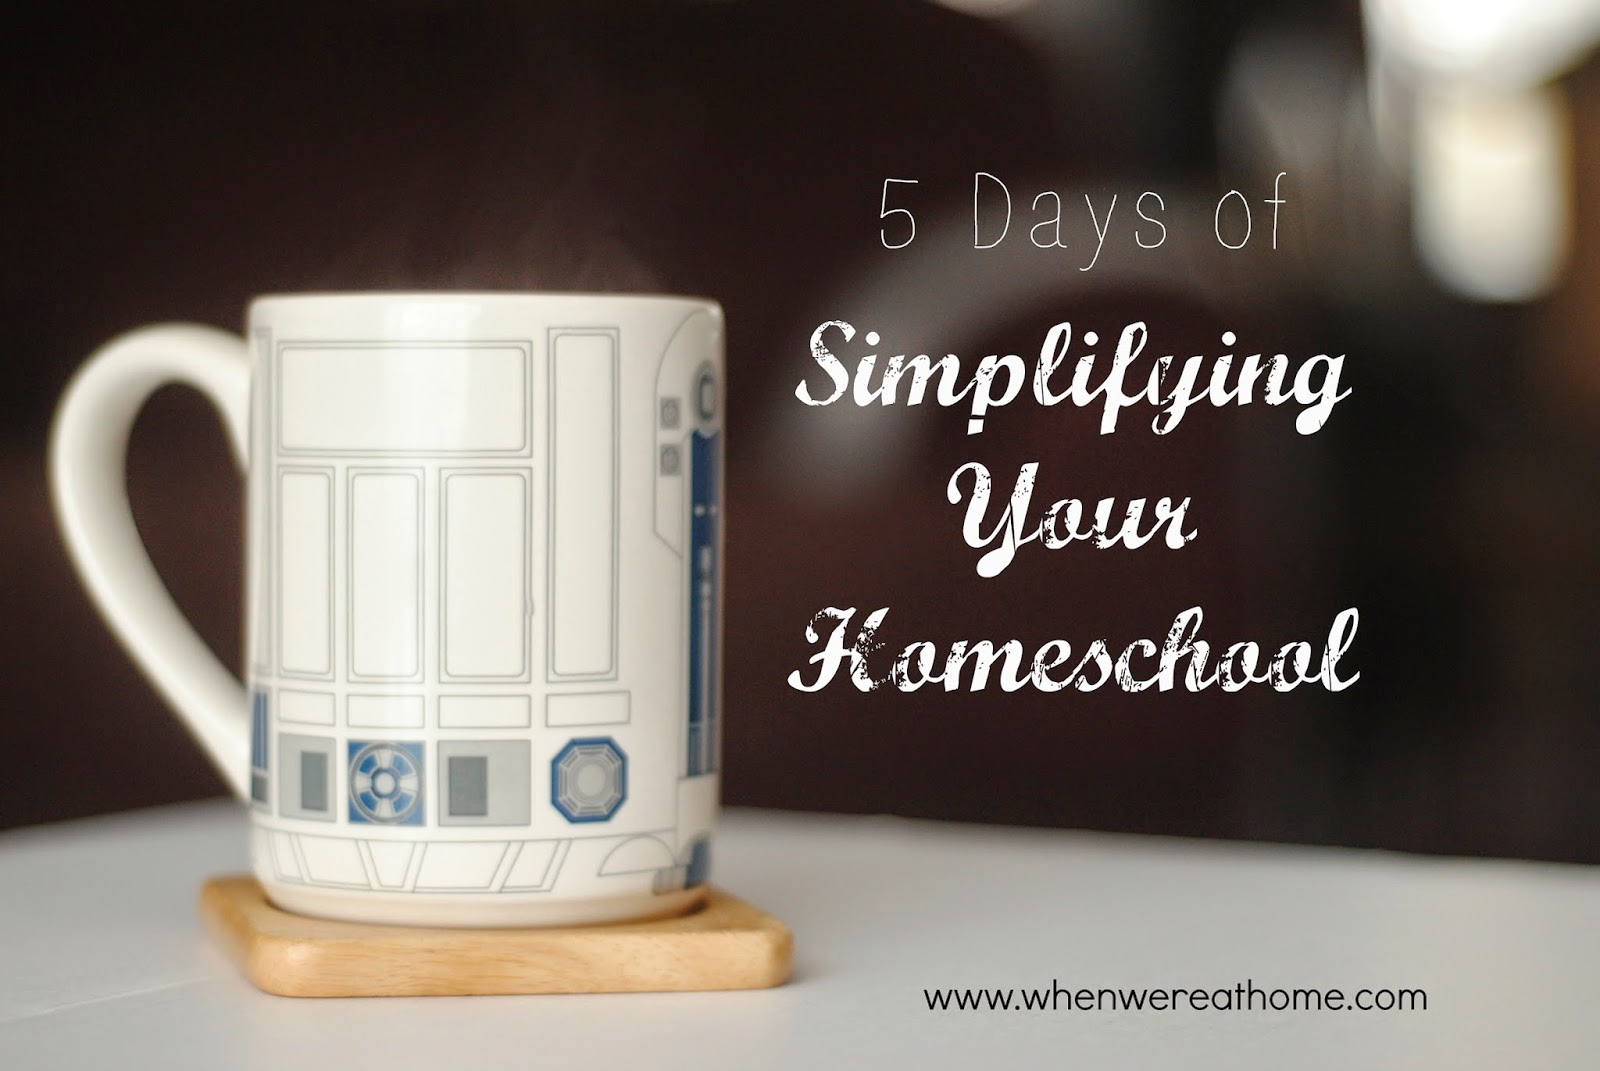 http://www.whenwereathome.com/2015/01/5-days-of-simplifying-your-homeschool.html